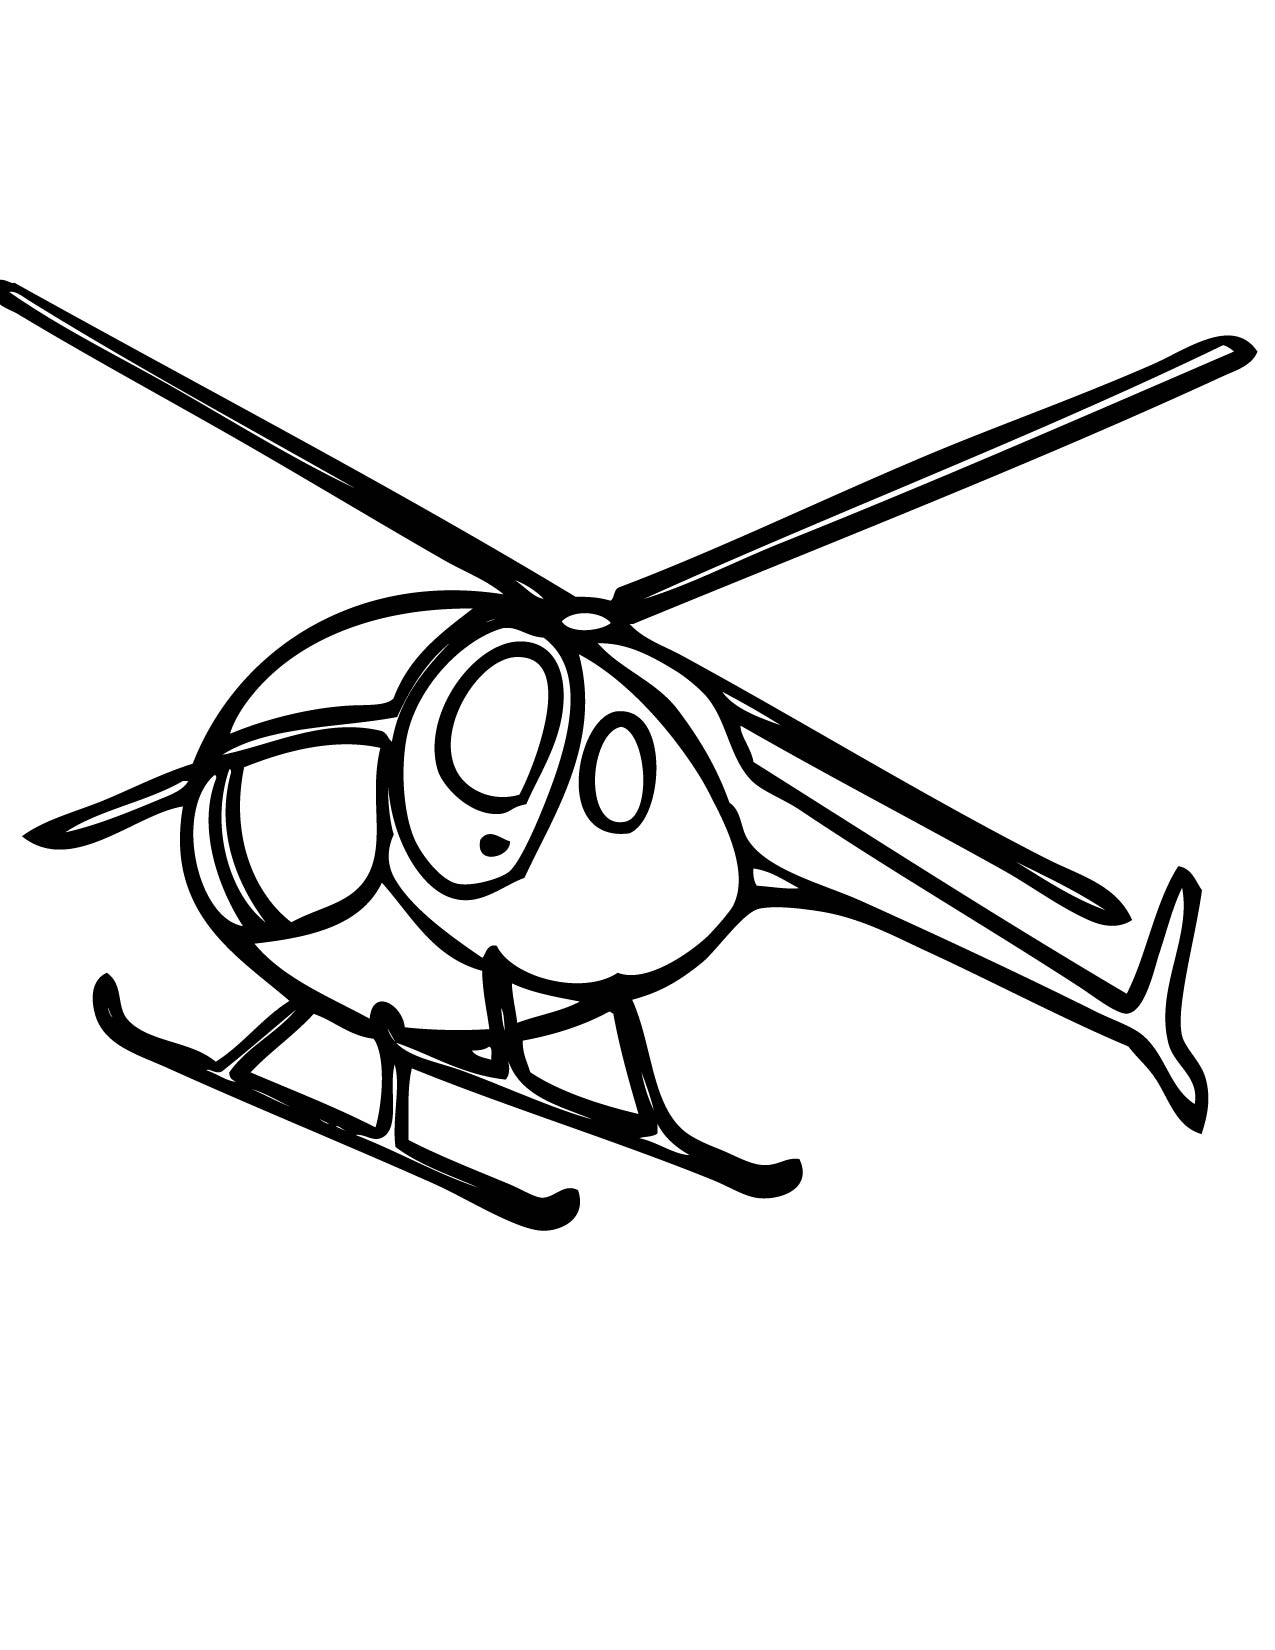 1275x1650 Helicopter Coloring Pages